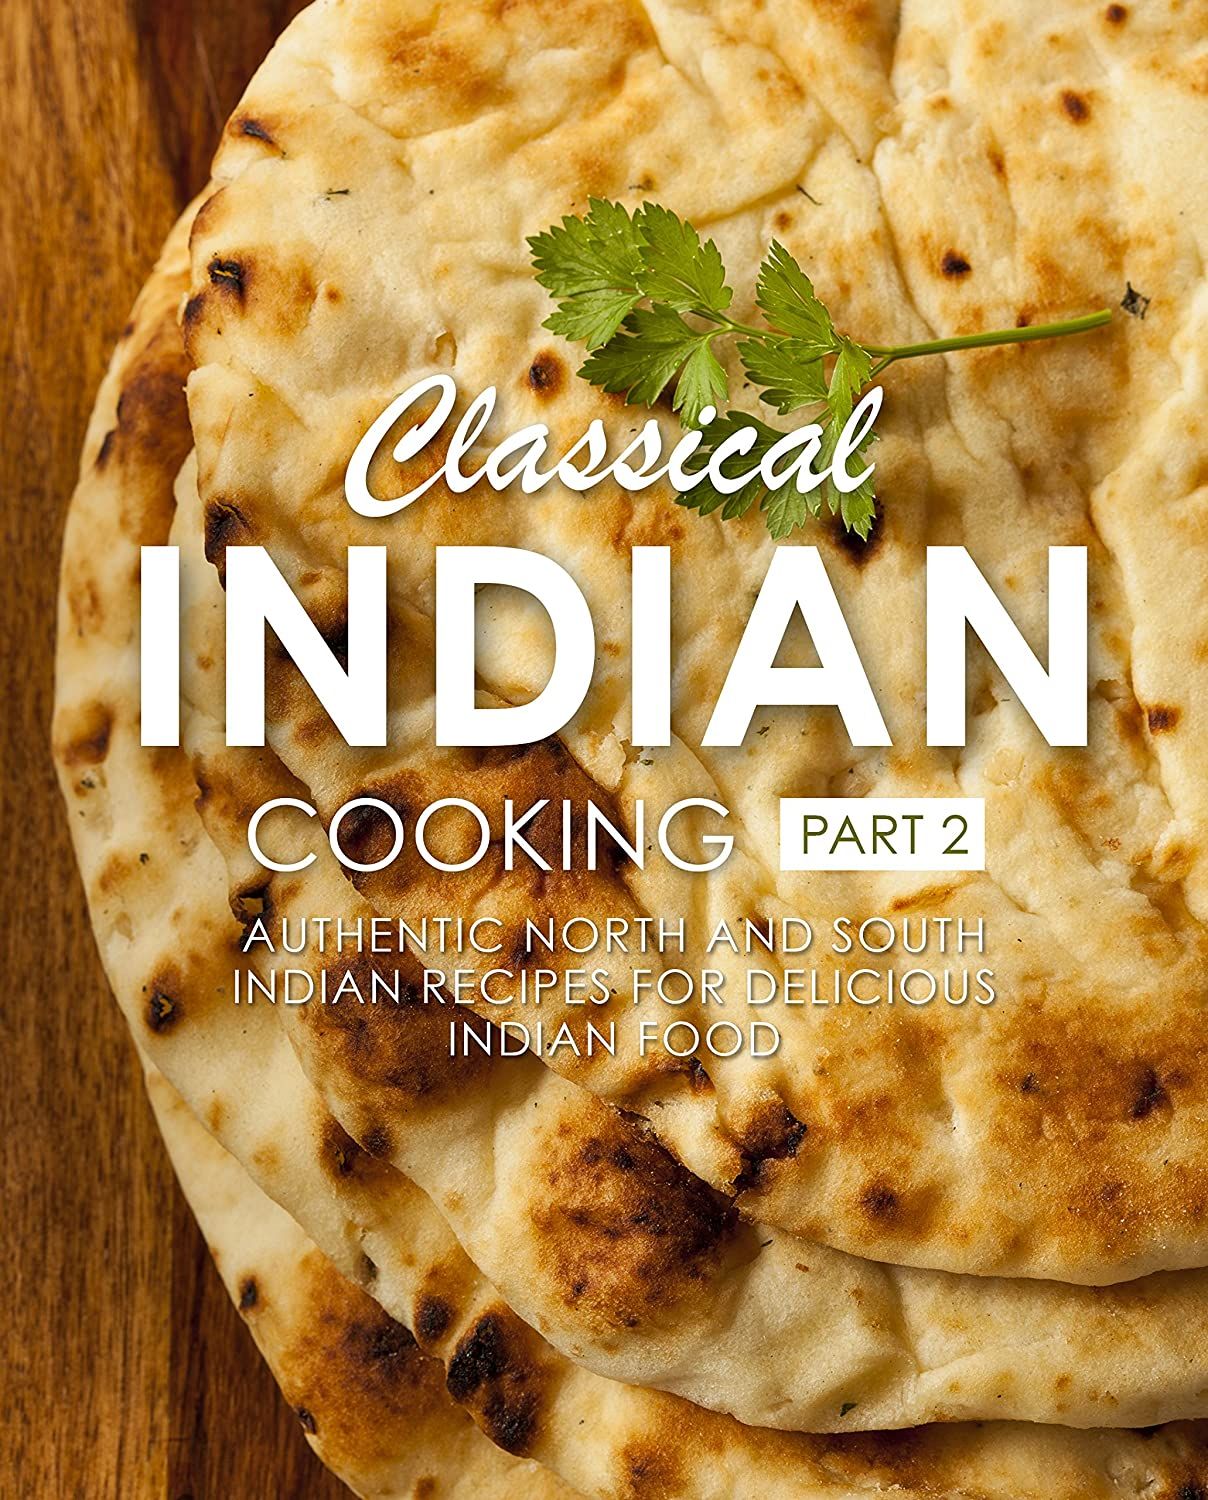 Classical Indian Cooking 2: Authentic North and South Indian Recipes for Delicious Indian Food (2nd Edition) (English Edition)